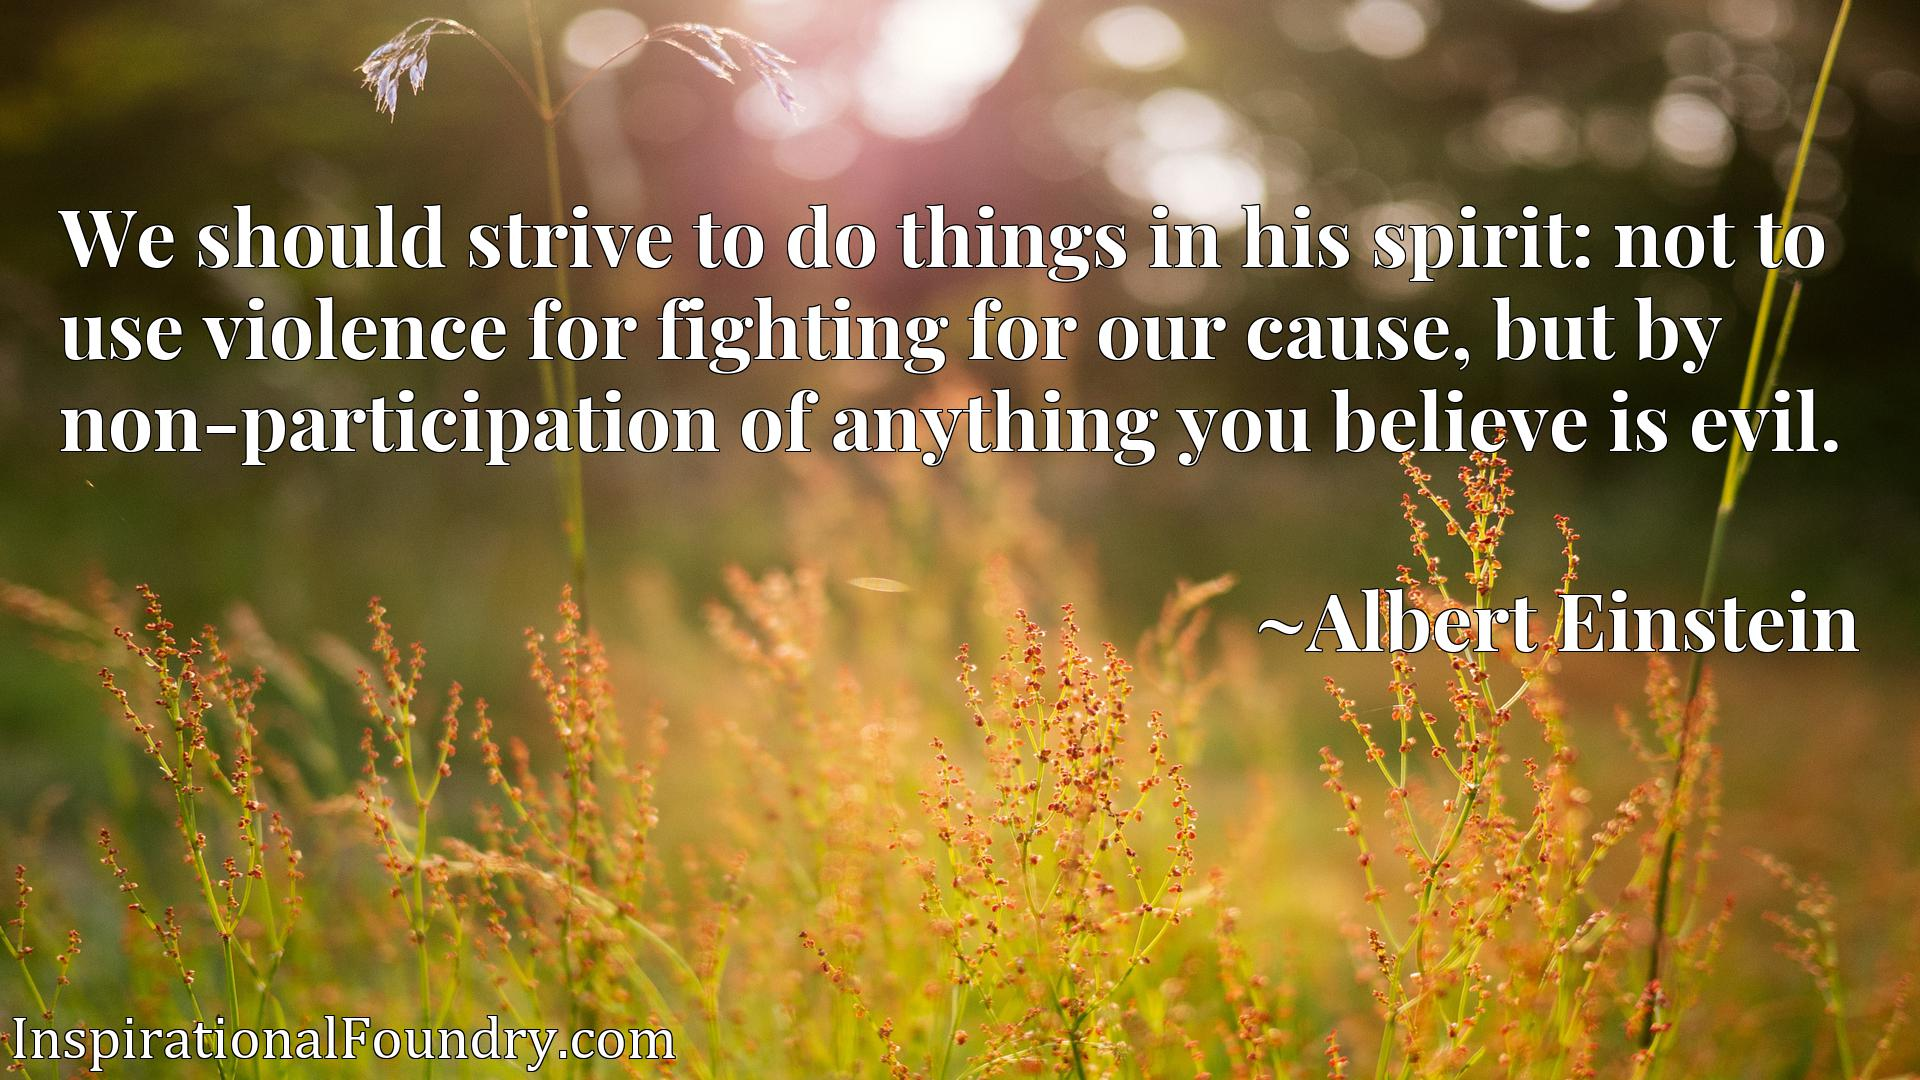 We should strive to do things in his spirit: not to use violence for fighting for our cause, but by non-participation of anything you believe is evil.